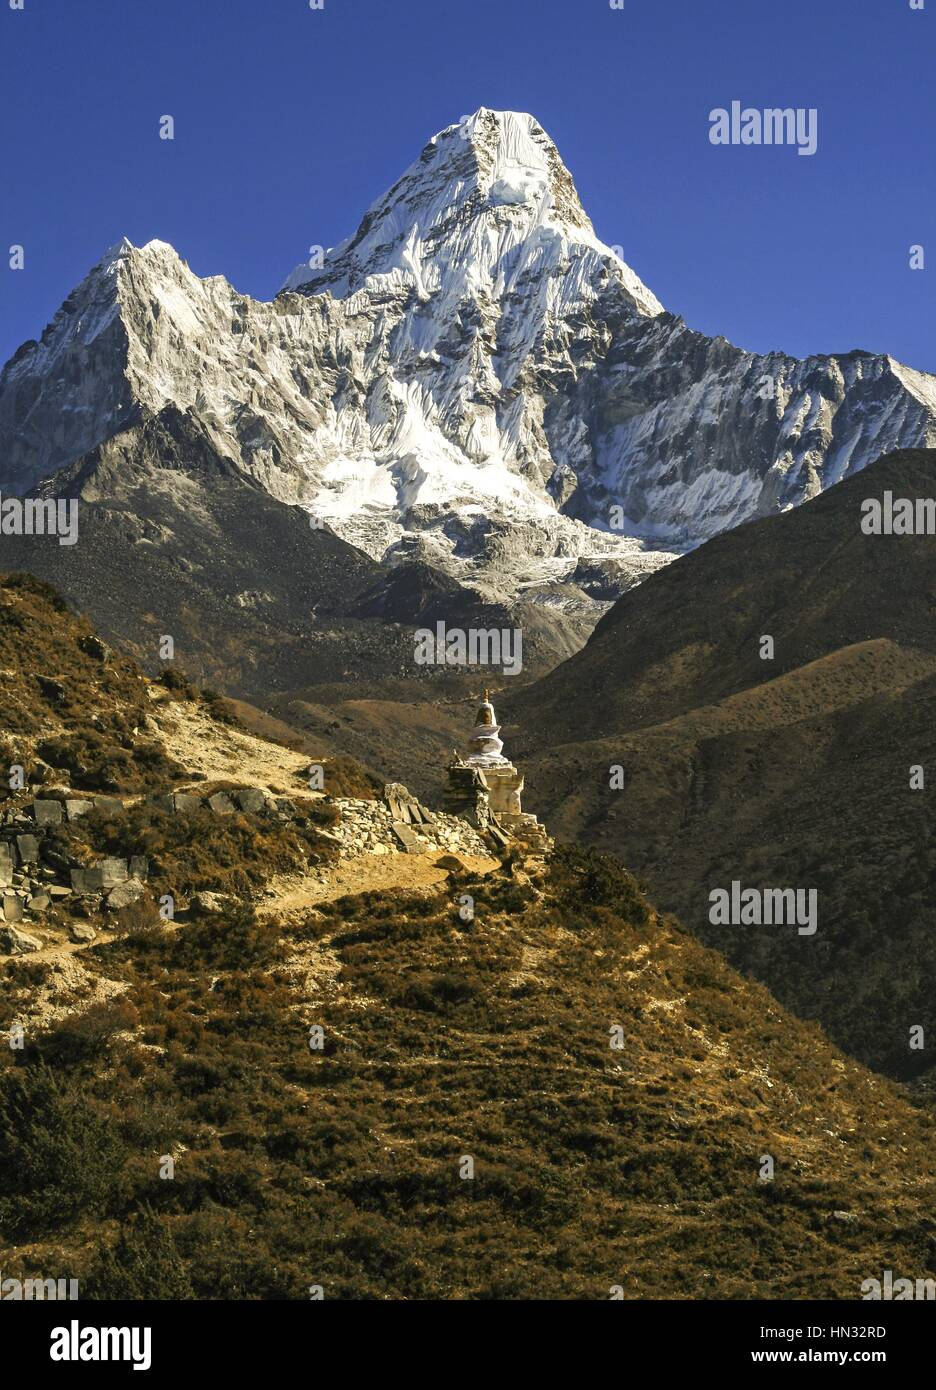 stock-photo-ama-dablam-mountain-and-budd